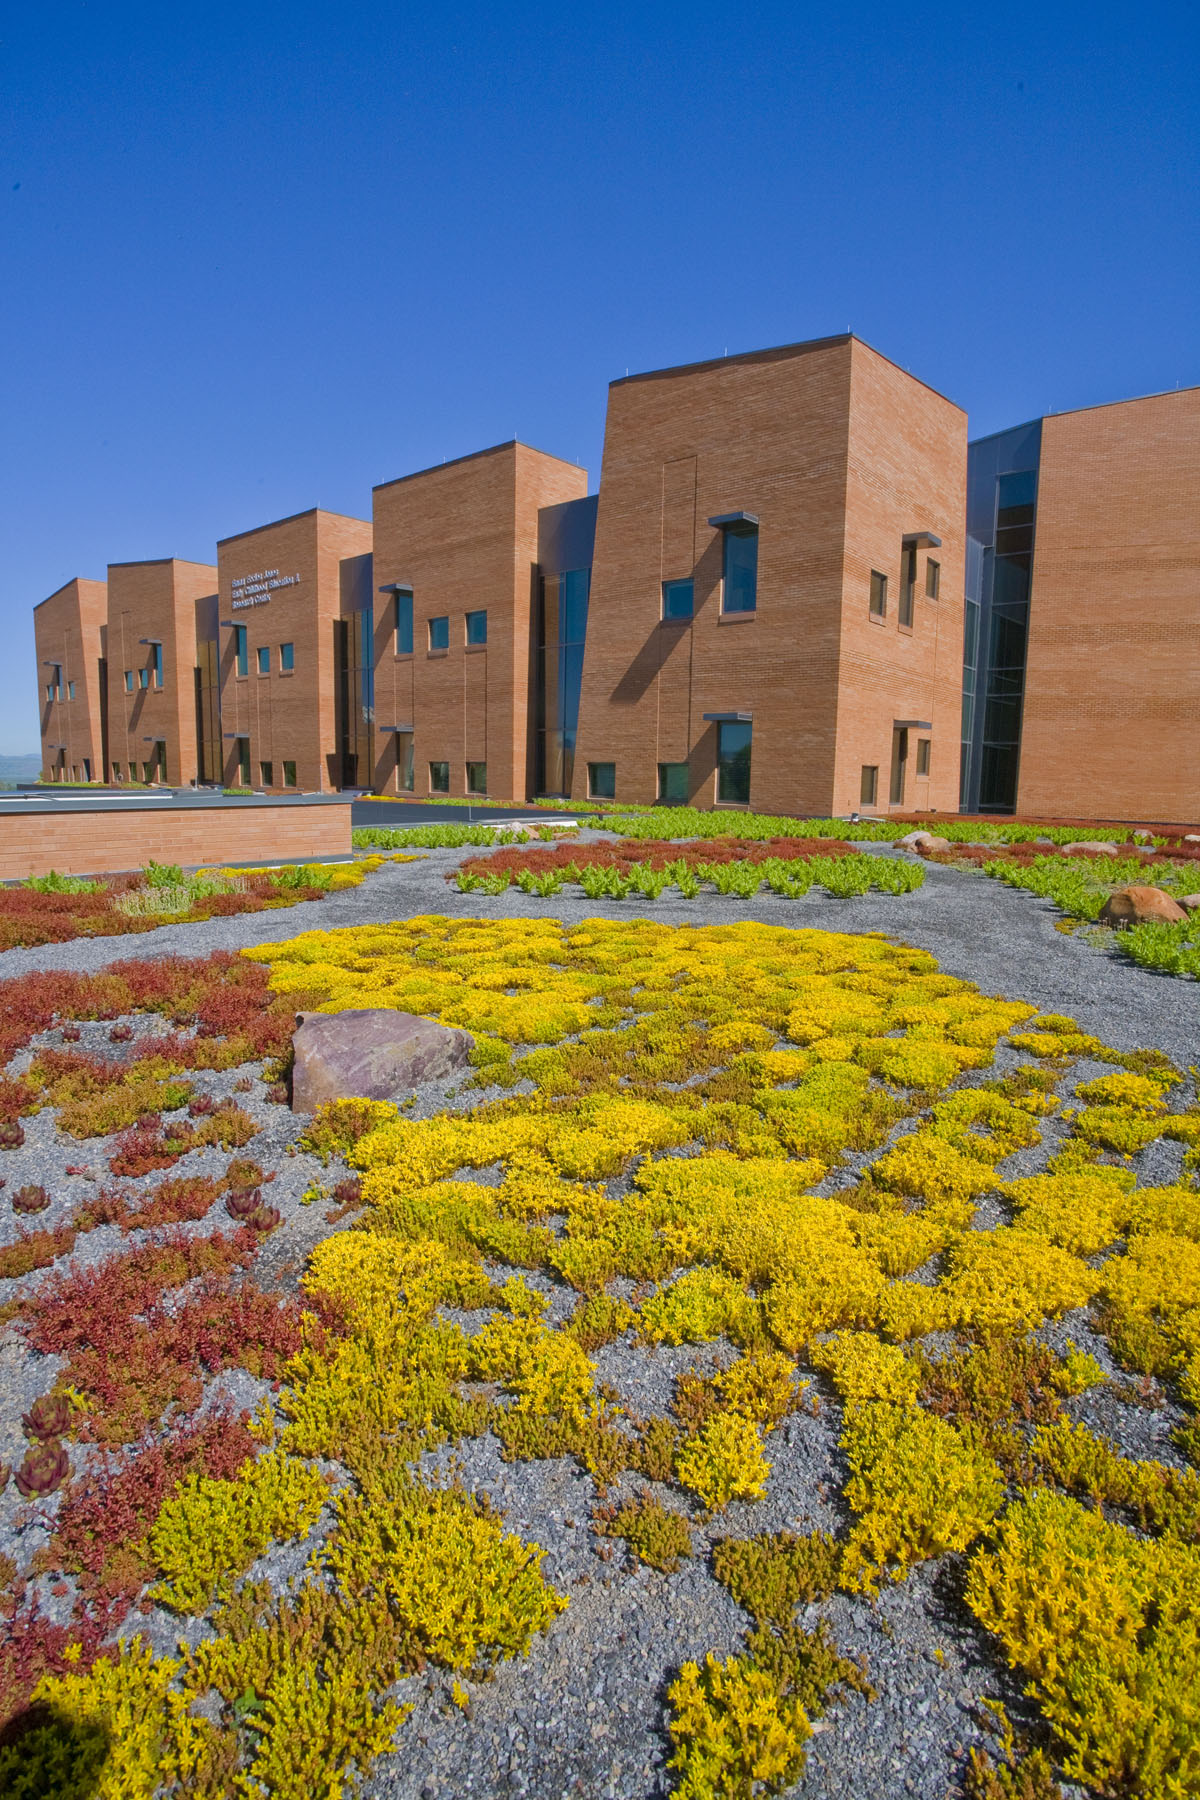 A closeup of the green roof system shows brightly colored plants in gravel at the early childhood education building.